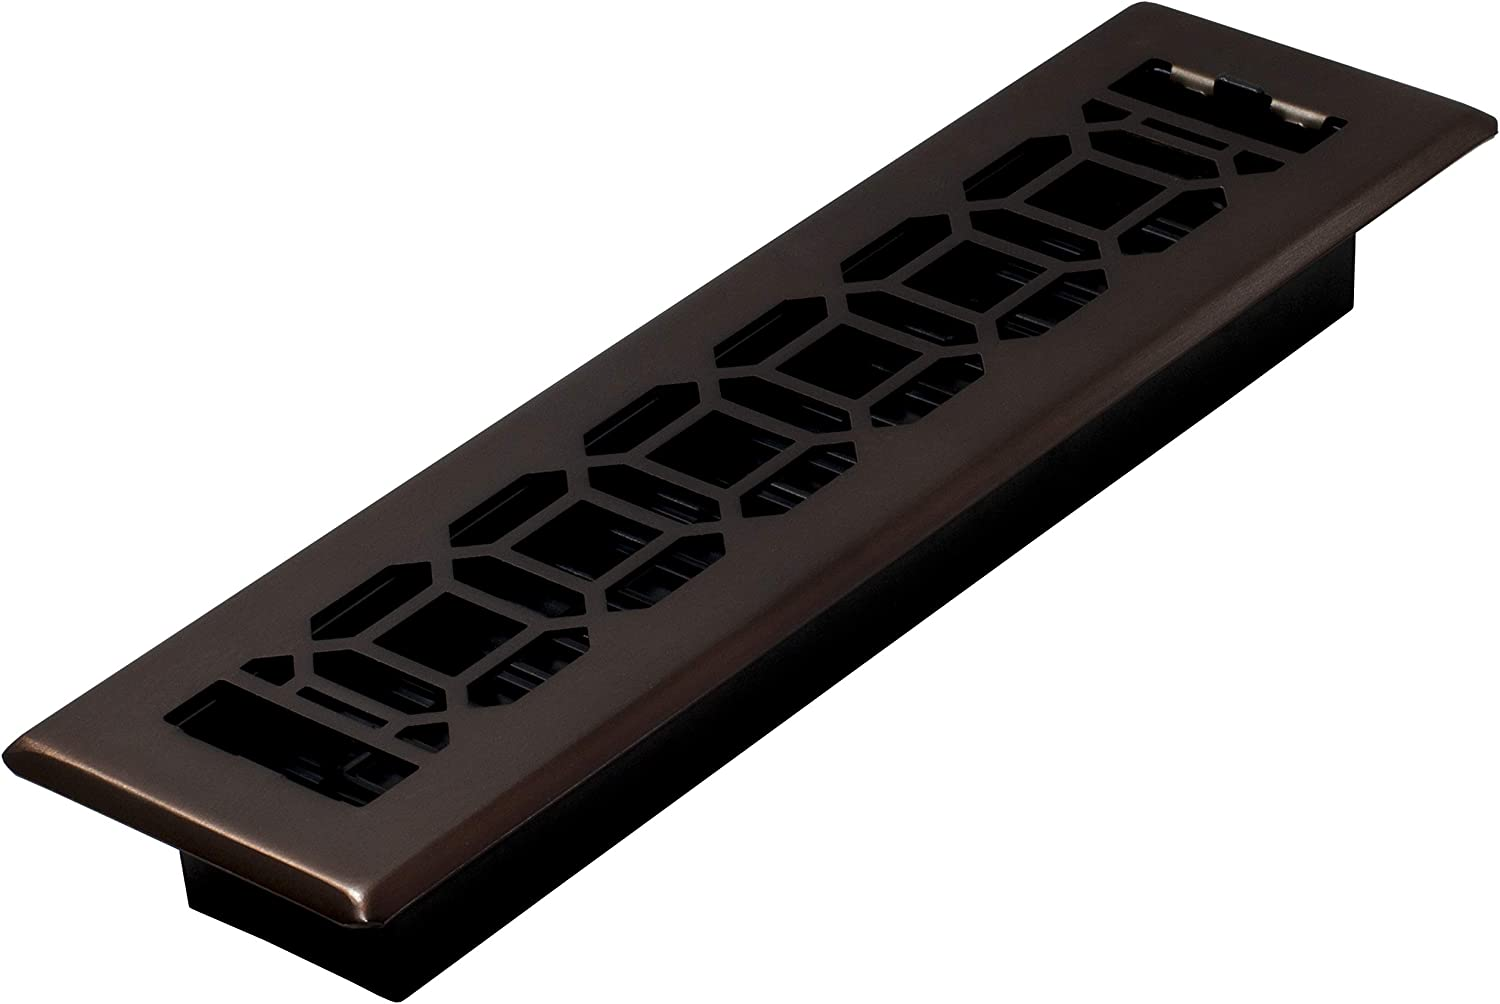 Decor Grates NGH212-RB Floor Register, 2 x 12, Rubbed Bronze